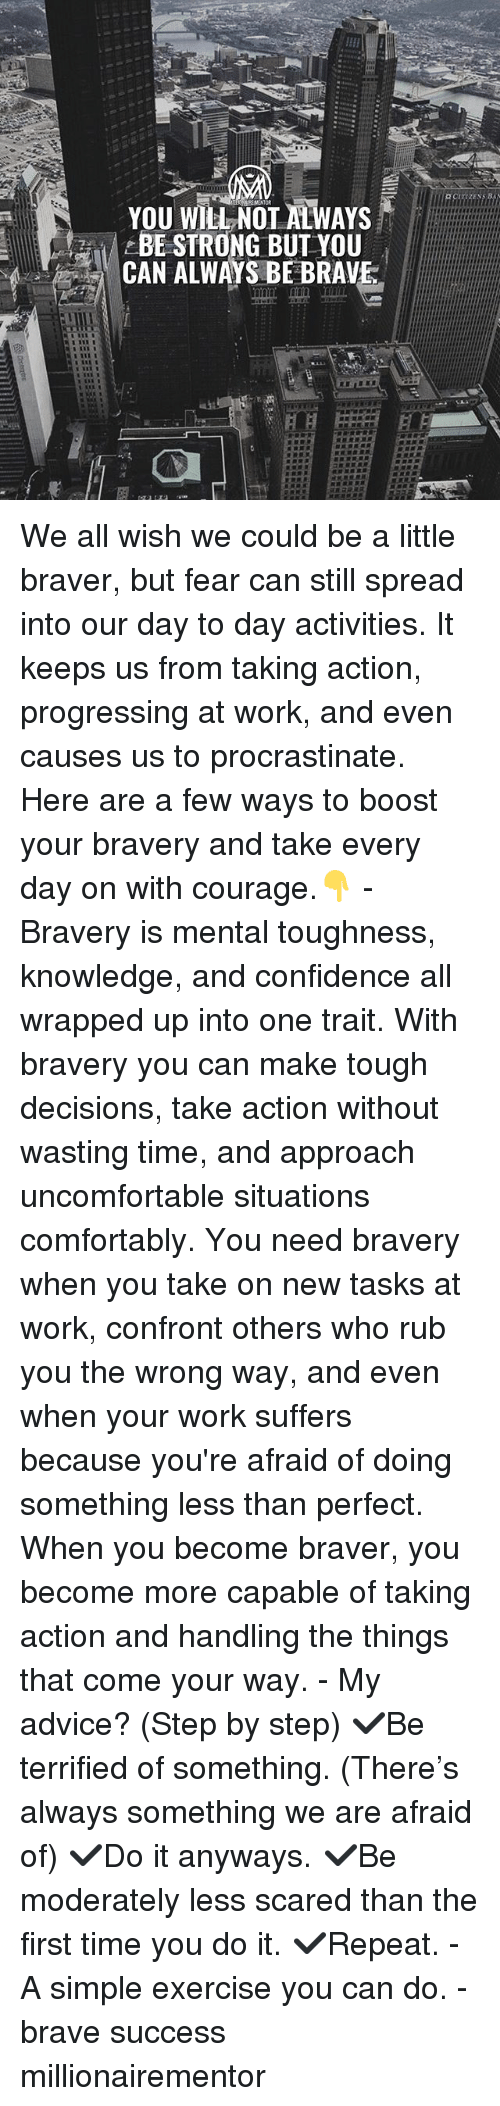 Advice, Confidence, and Memes: YOU WILLNOT ALWAYS  BE STRONG BUT YOU  CAN ALWAYS BE BRAVE We all wish we could be a little braver, but fear can still spread into our day to day activities. It keeps us from taking action, progressing at work, and even causes us to procrastinate. Here are a few ways to boost your bravery and take every day on with courage.👇 - Bravery is mental toughness, knowledge, and confidence all wrapped up into one trait. With bravery you can make tough decisions, take action without wasting time, and approach uncomfortable situations comfortably. You need bravery when you take on new tasks at work, confront others who rub you the wrong way, and even when your work suffers because you're afraid of doing something less than perfect. When you become braver, you become more capable of taking action and handling the things that come your way. - My advice? (Step by step) ✔️Be terrified of something. (There's always something we are afraid of) ✔️Do it anyways. ✔️Be moderately less scared than the first time you do it. ✔️Repeat. - A simple exercise you can do. - brave success millionairementor